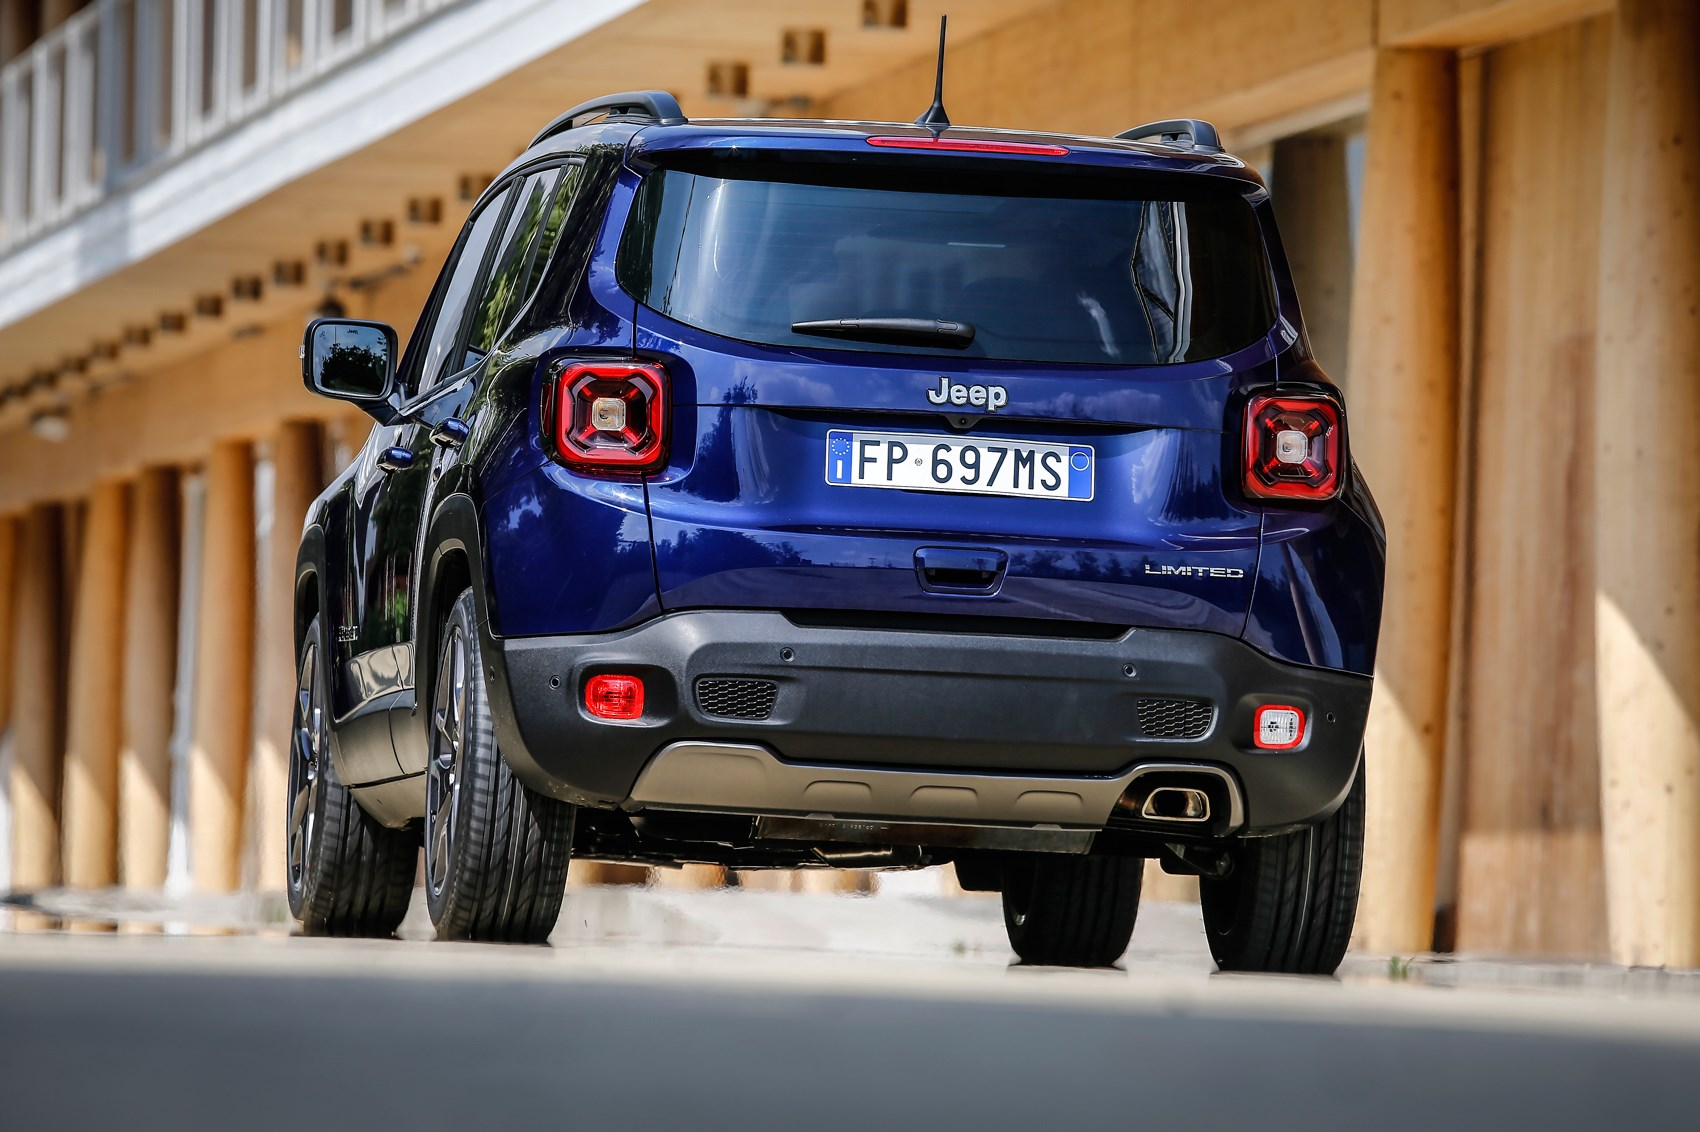 The Power Of Three We Take A Tour Maseratis Latest Trimaran Old Jeep Renegade For Sale Nip Tuck Time 2018 Facelift Revealed